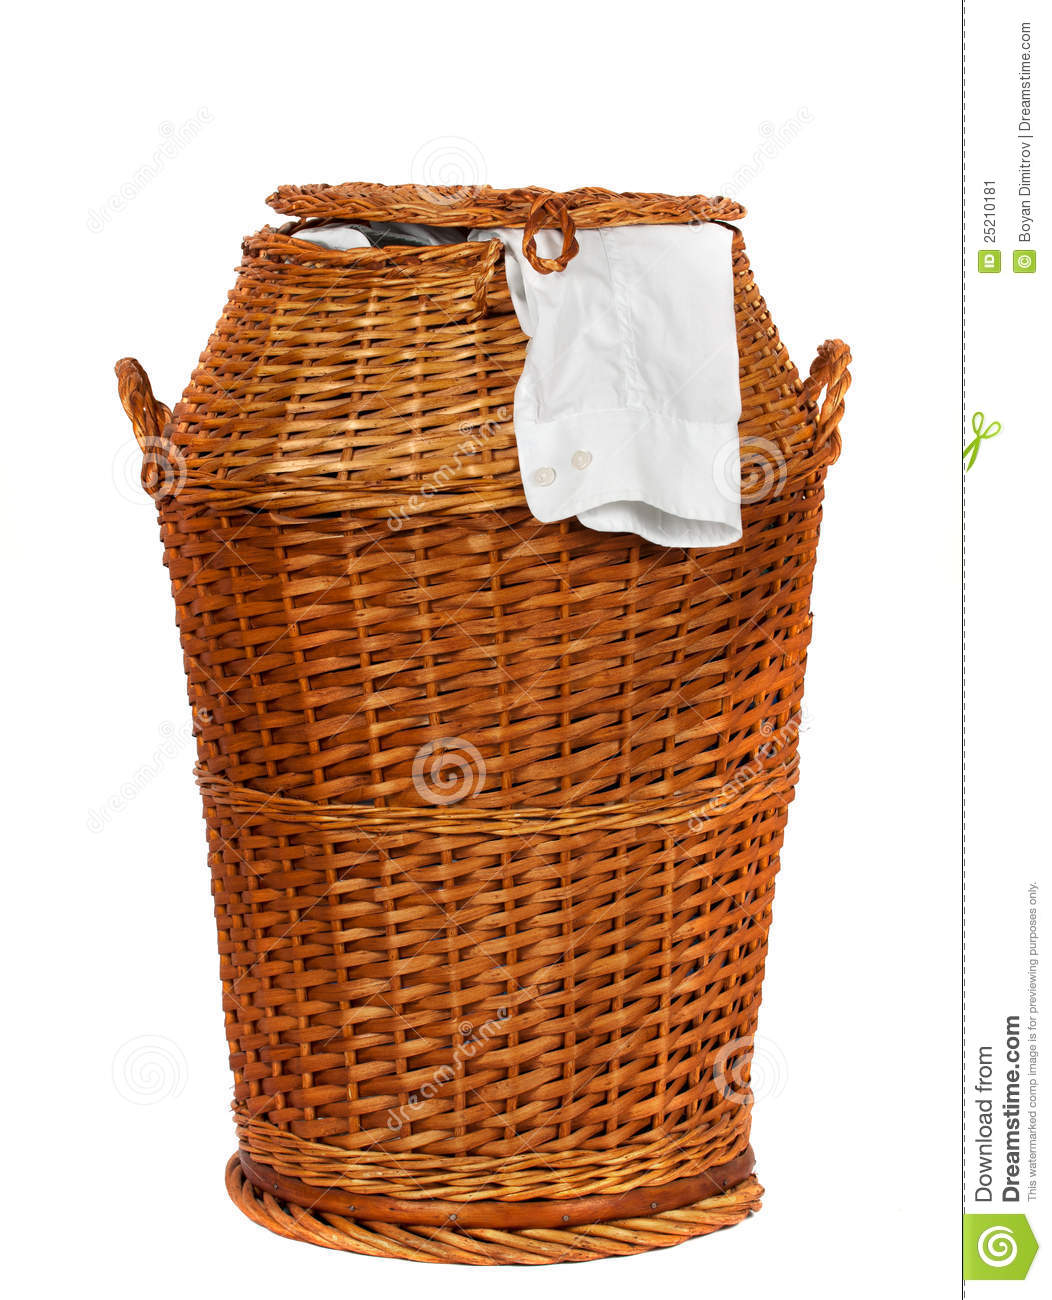 Animal Wicker Hamper Wicker Laundry Basket Stock Image Image 25210181